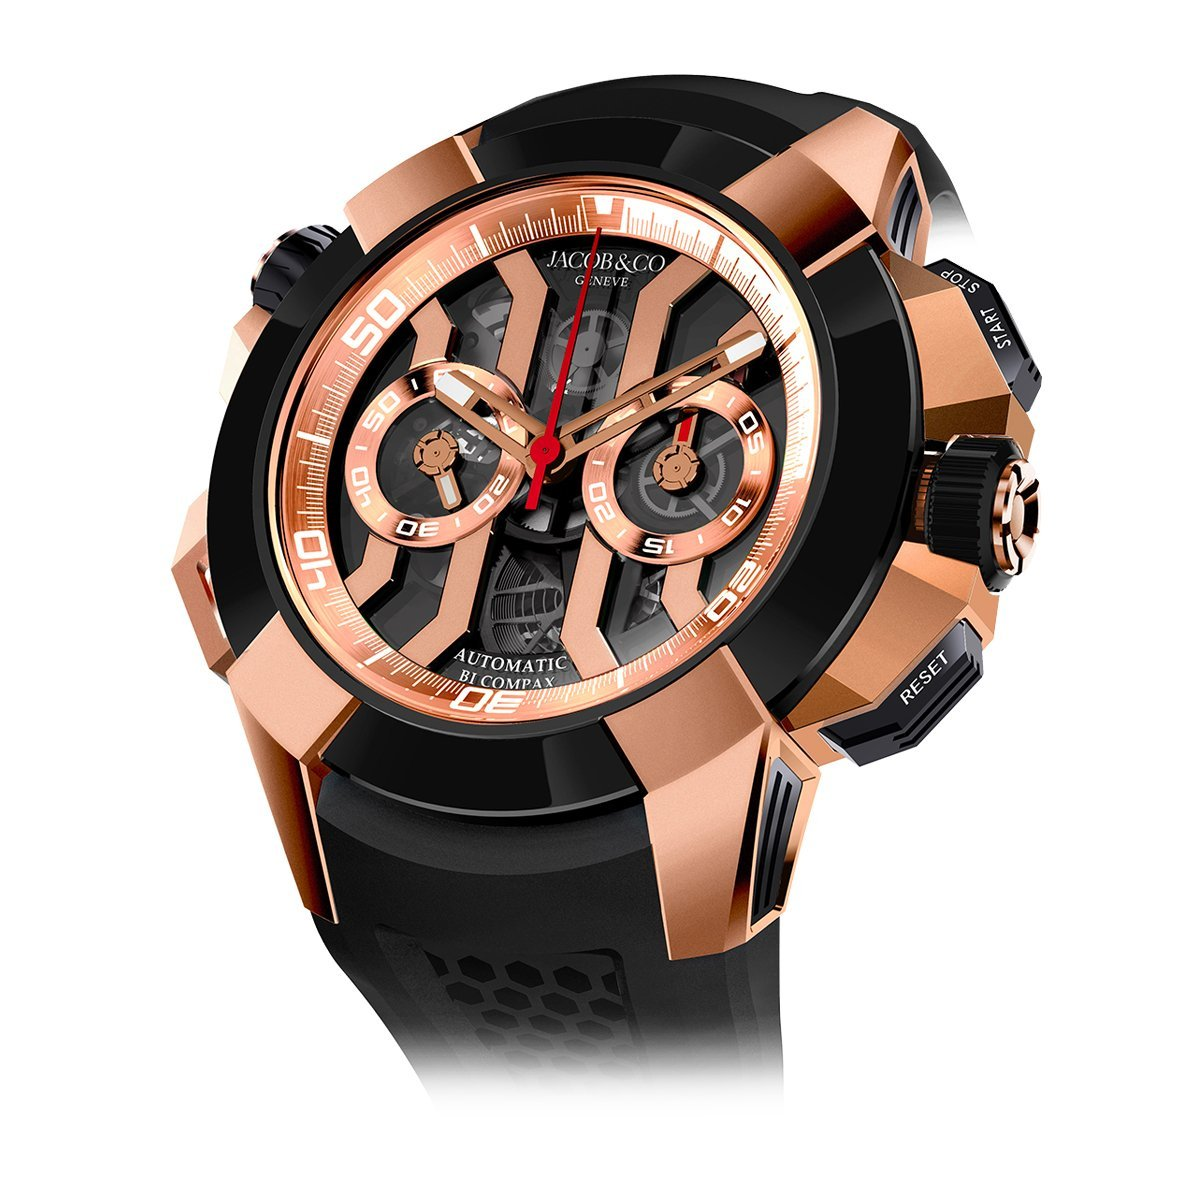 Jacob & Co. Epic X Chronograph Black - Watches & Crystals